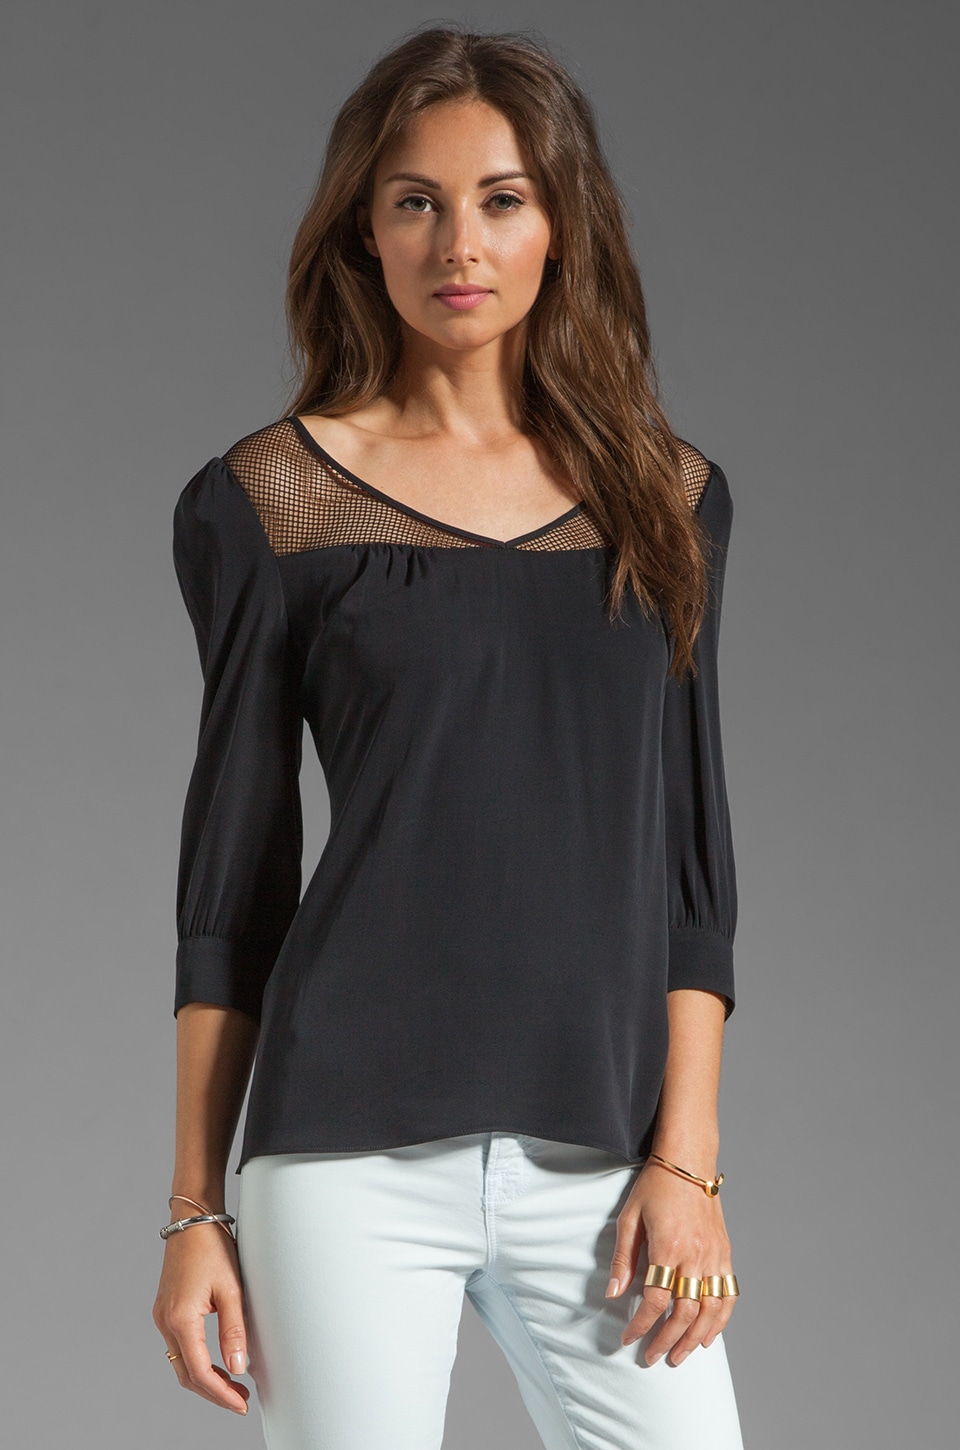 Catherine Malandrino V Neck Blouse in Black